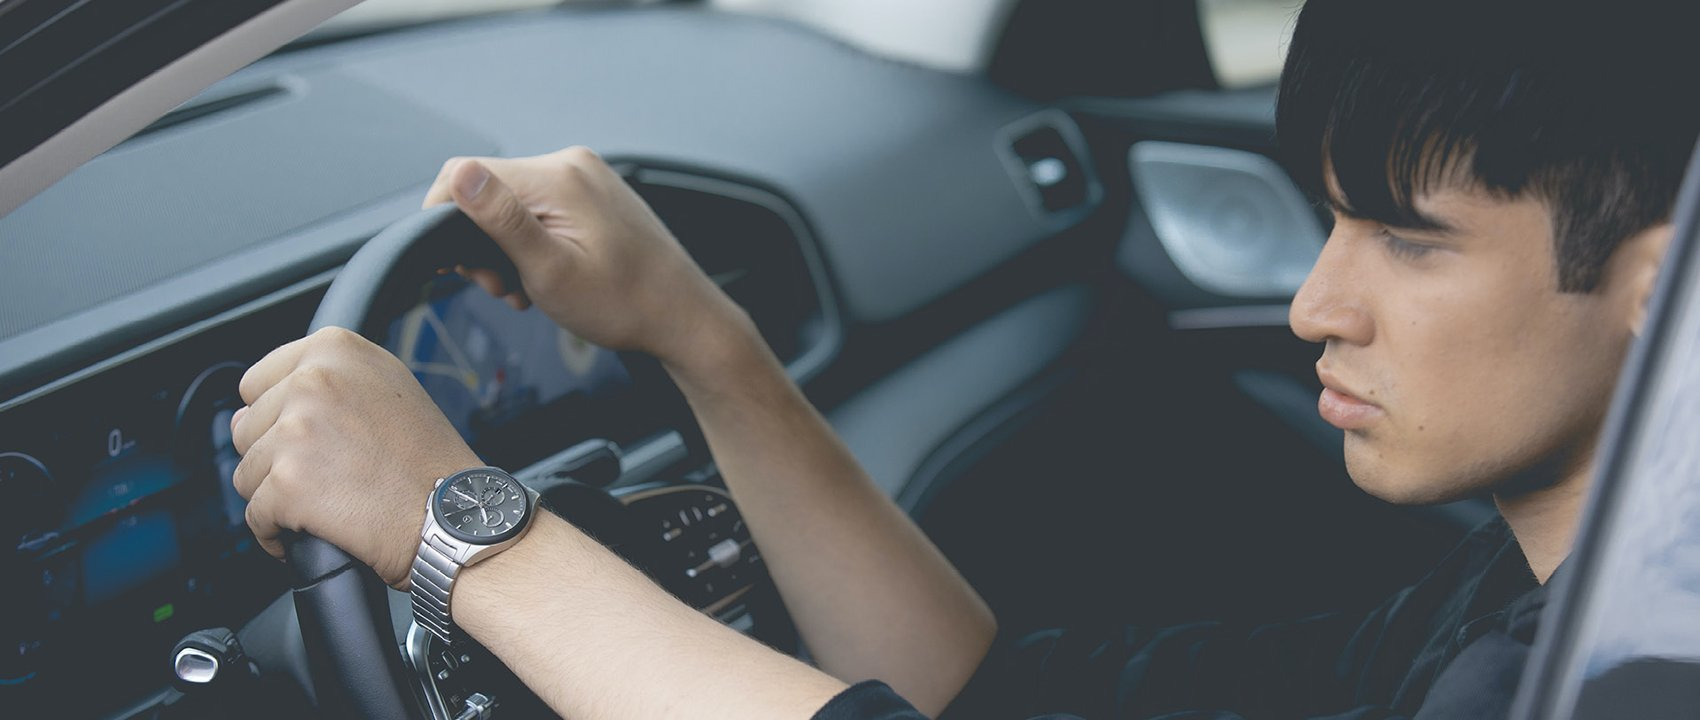 Close-up of a Mercedes-Benz automatic watch on the wrist of a person driving.